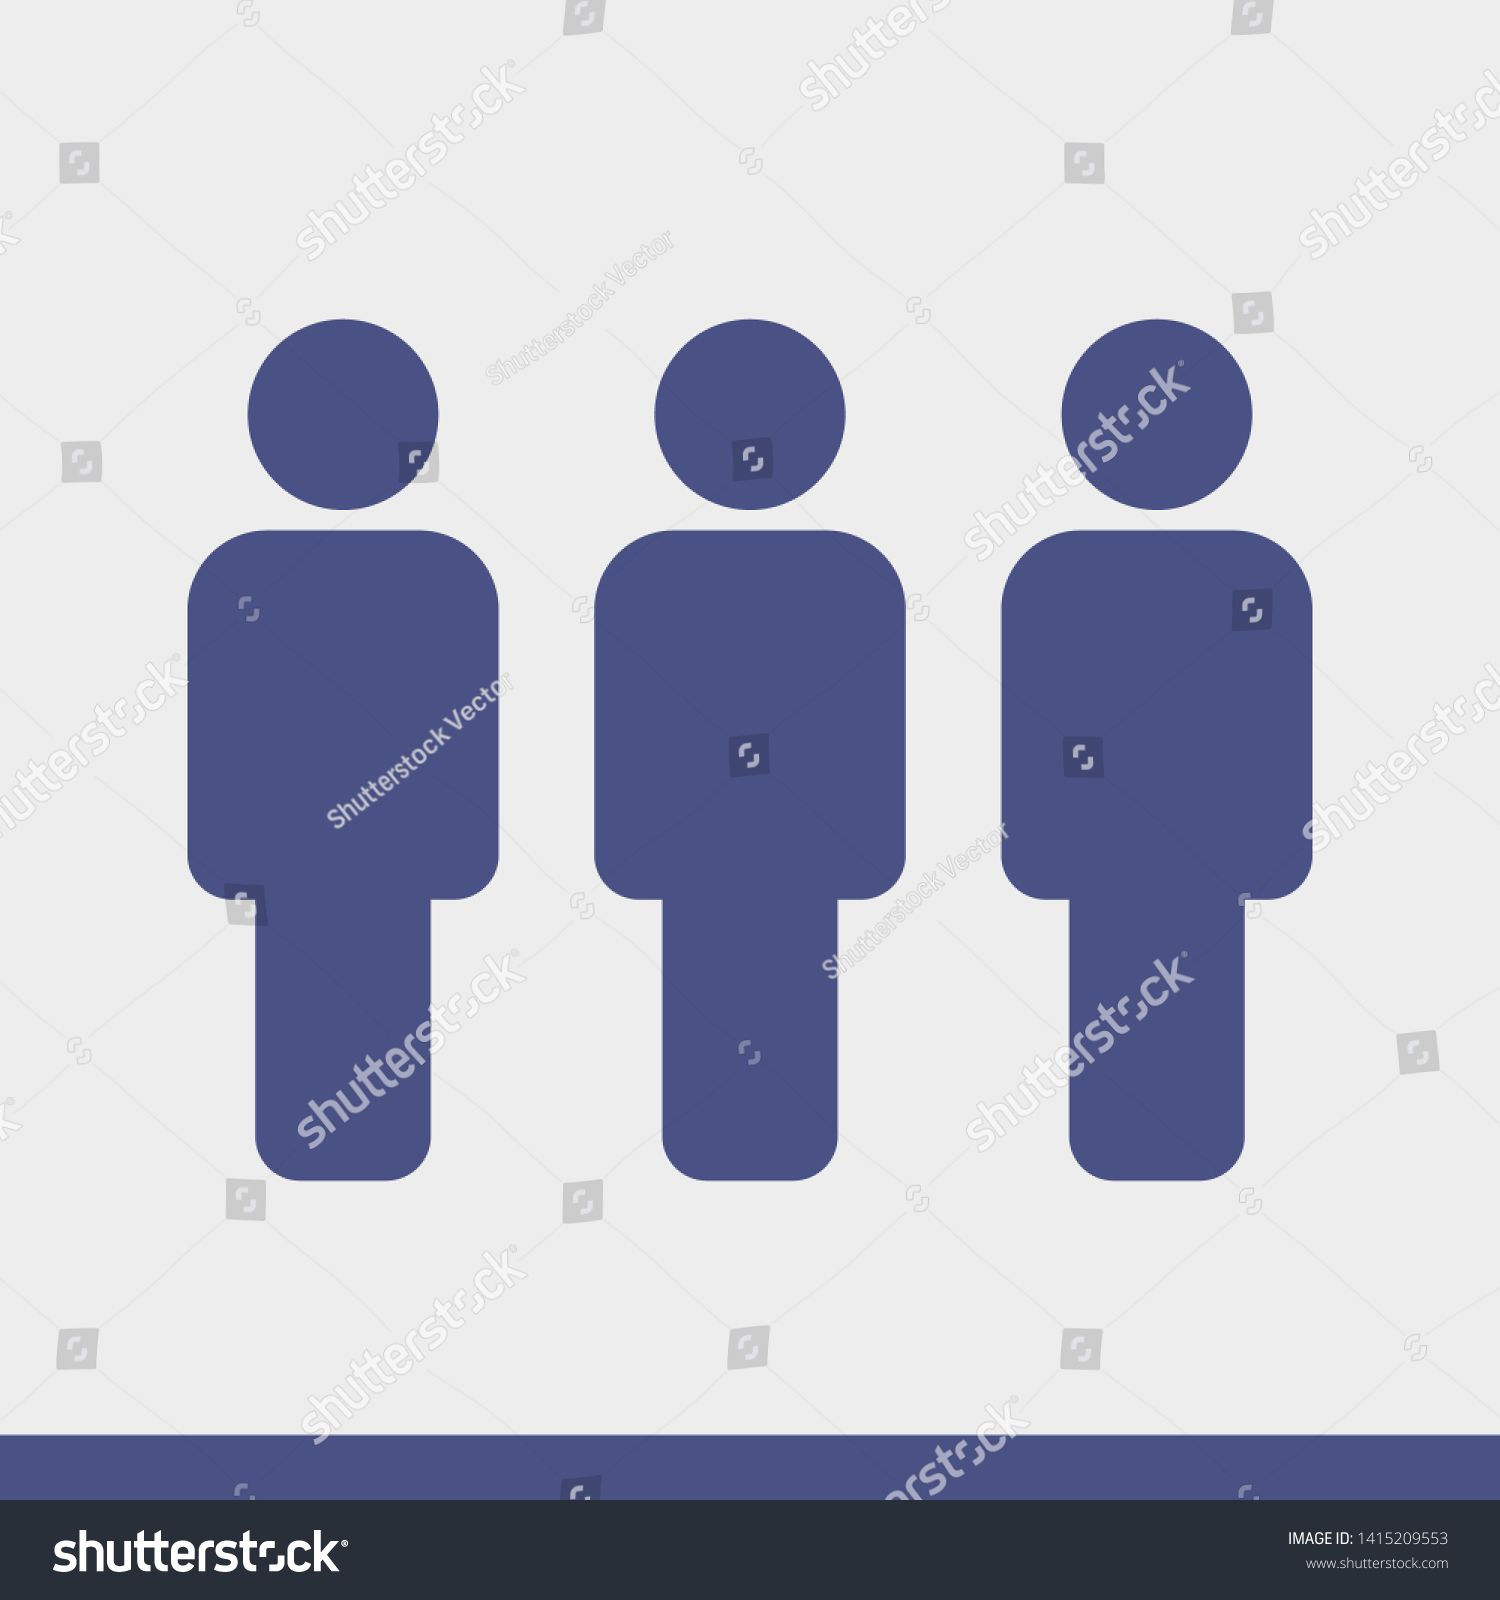 People Vector Icon Person Symbol Work Group Team Persons Crowd Vector Illustration Icon Group Of People Pictogram Isolated People Icon Vector Icons Symbols